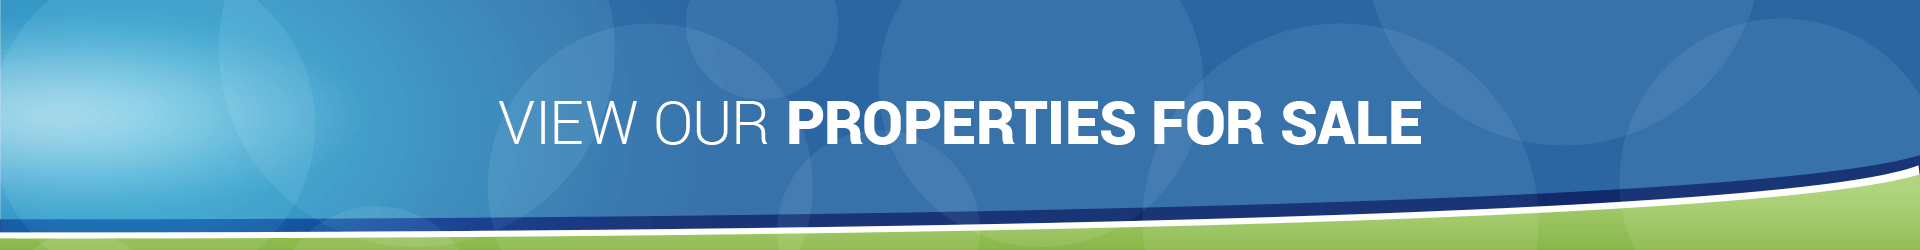 We are Worksop's Leading sales and letting agent. Our range of additional services at Bartrop and Dilks include New Homes and Buy to Let investment advice.